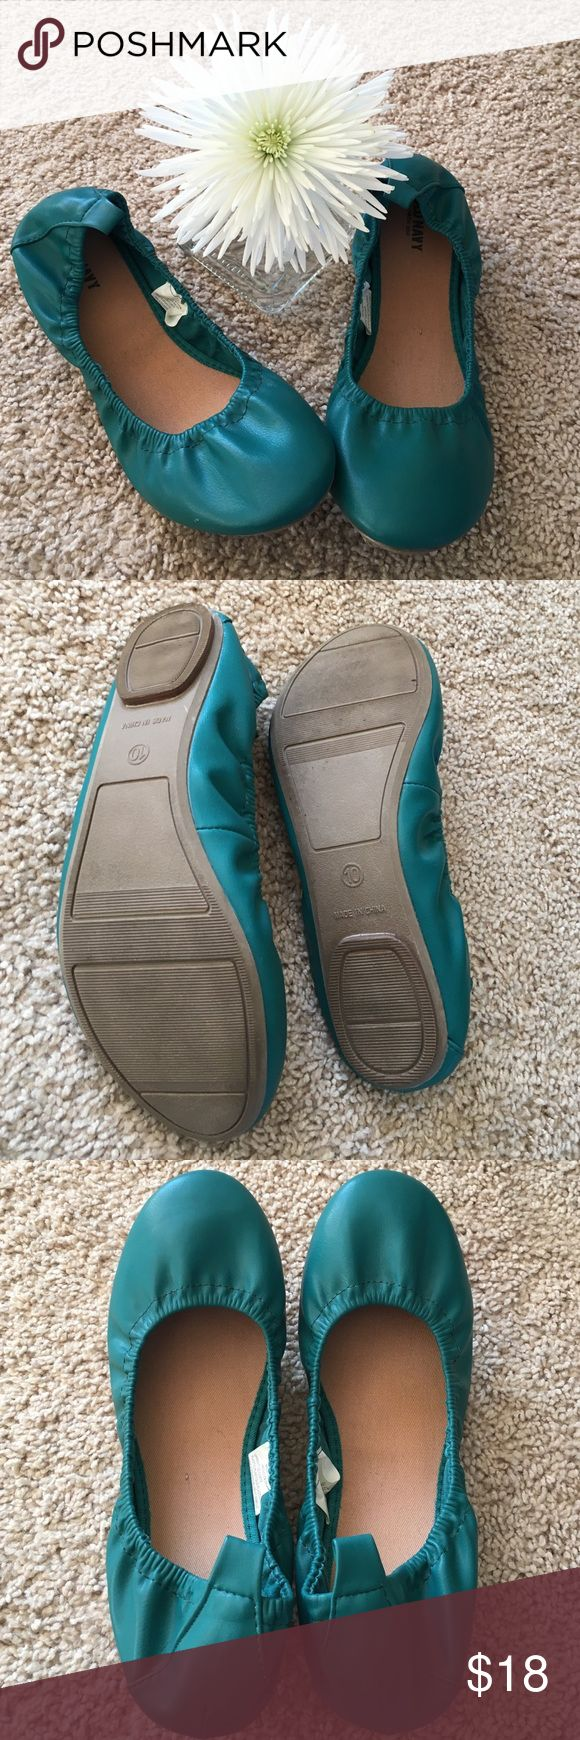 Old Navy Ballet Flats Turquoise faux leather ballet flats from Old Navy.  Excellent condition.  Size 10. Old Navy Shoes Flats & Loafers